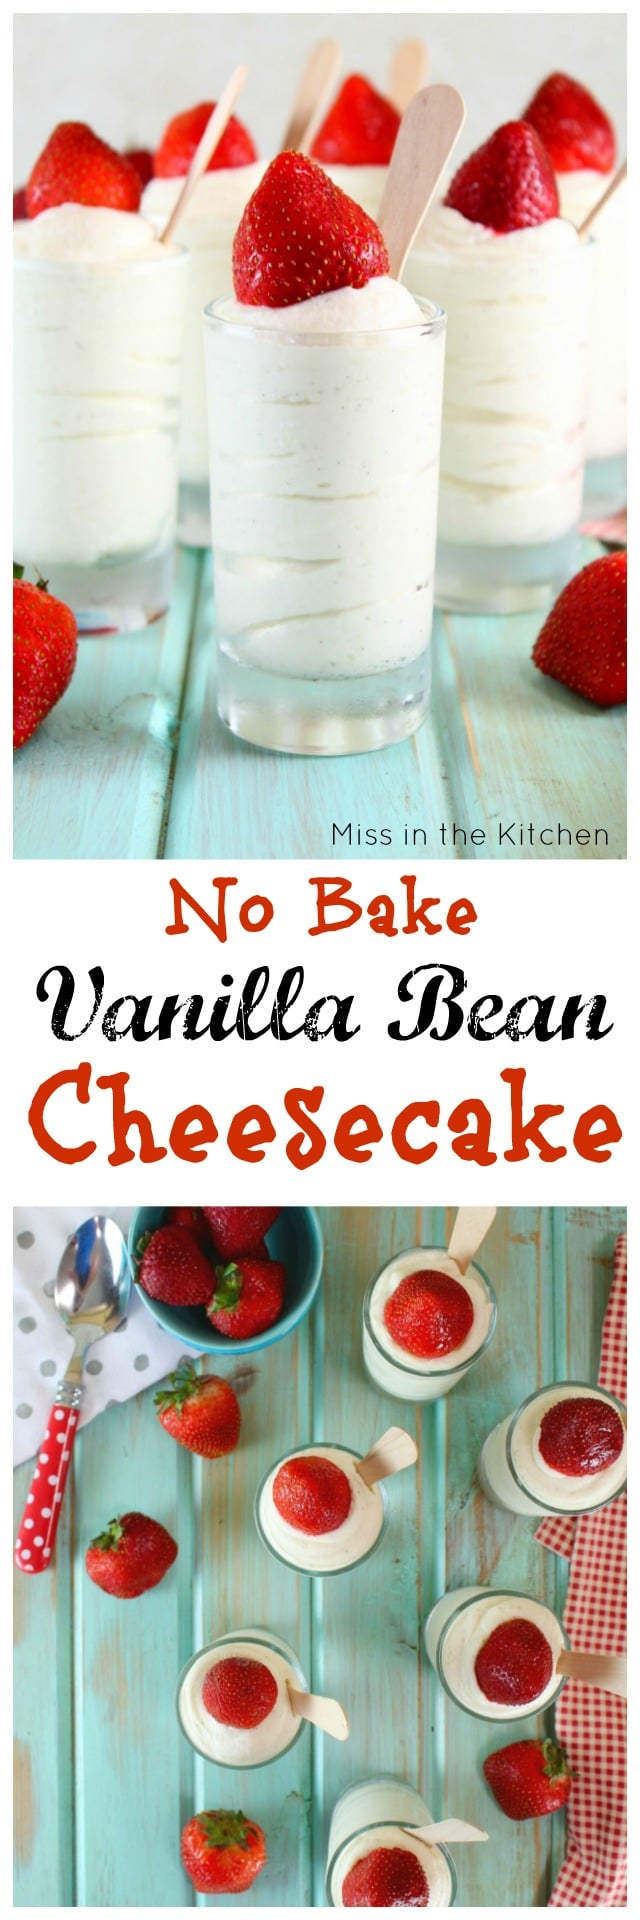 No Bake Vanilla Bean Cheesecake Recipe ~ Easy Dessert for entertaining ~ MissintheKitchen.com